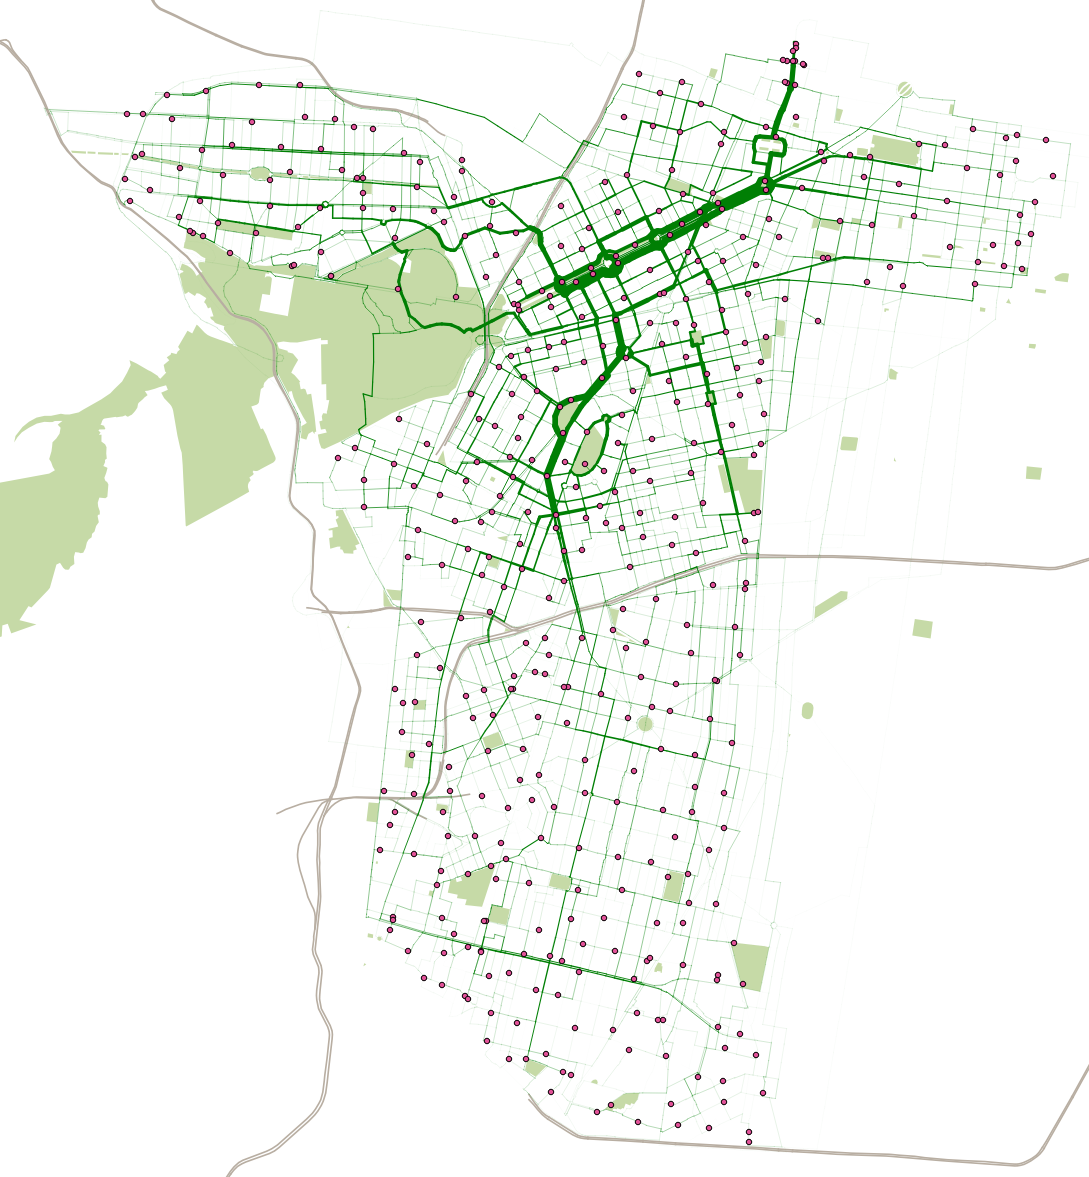 The Above Map Shows The Estimated Routes And Flows Of Over 16 Million Users Of The Bikeshare In Mexico City Ecobici Across The 22 Months Between